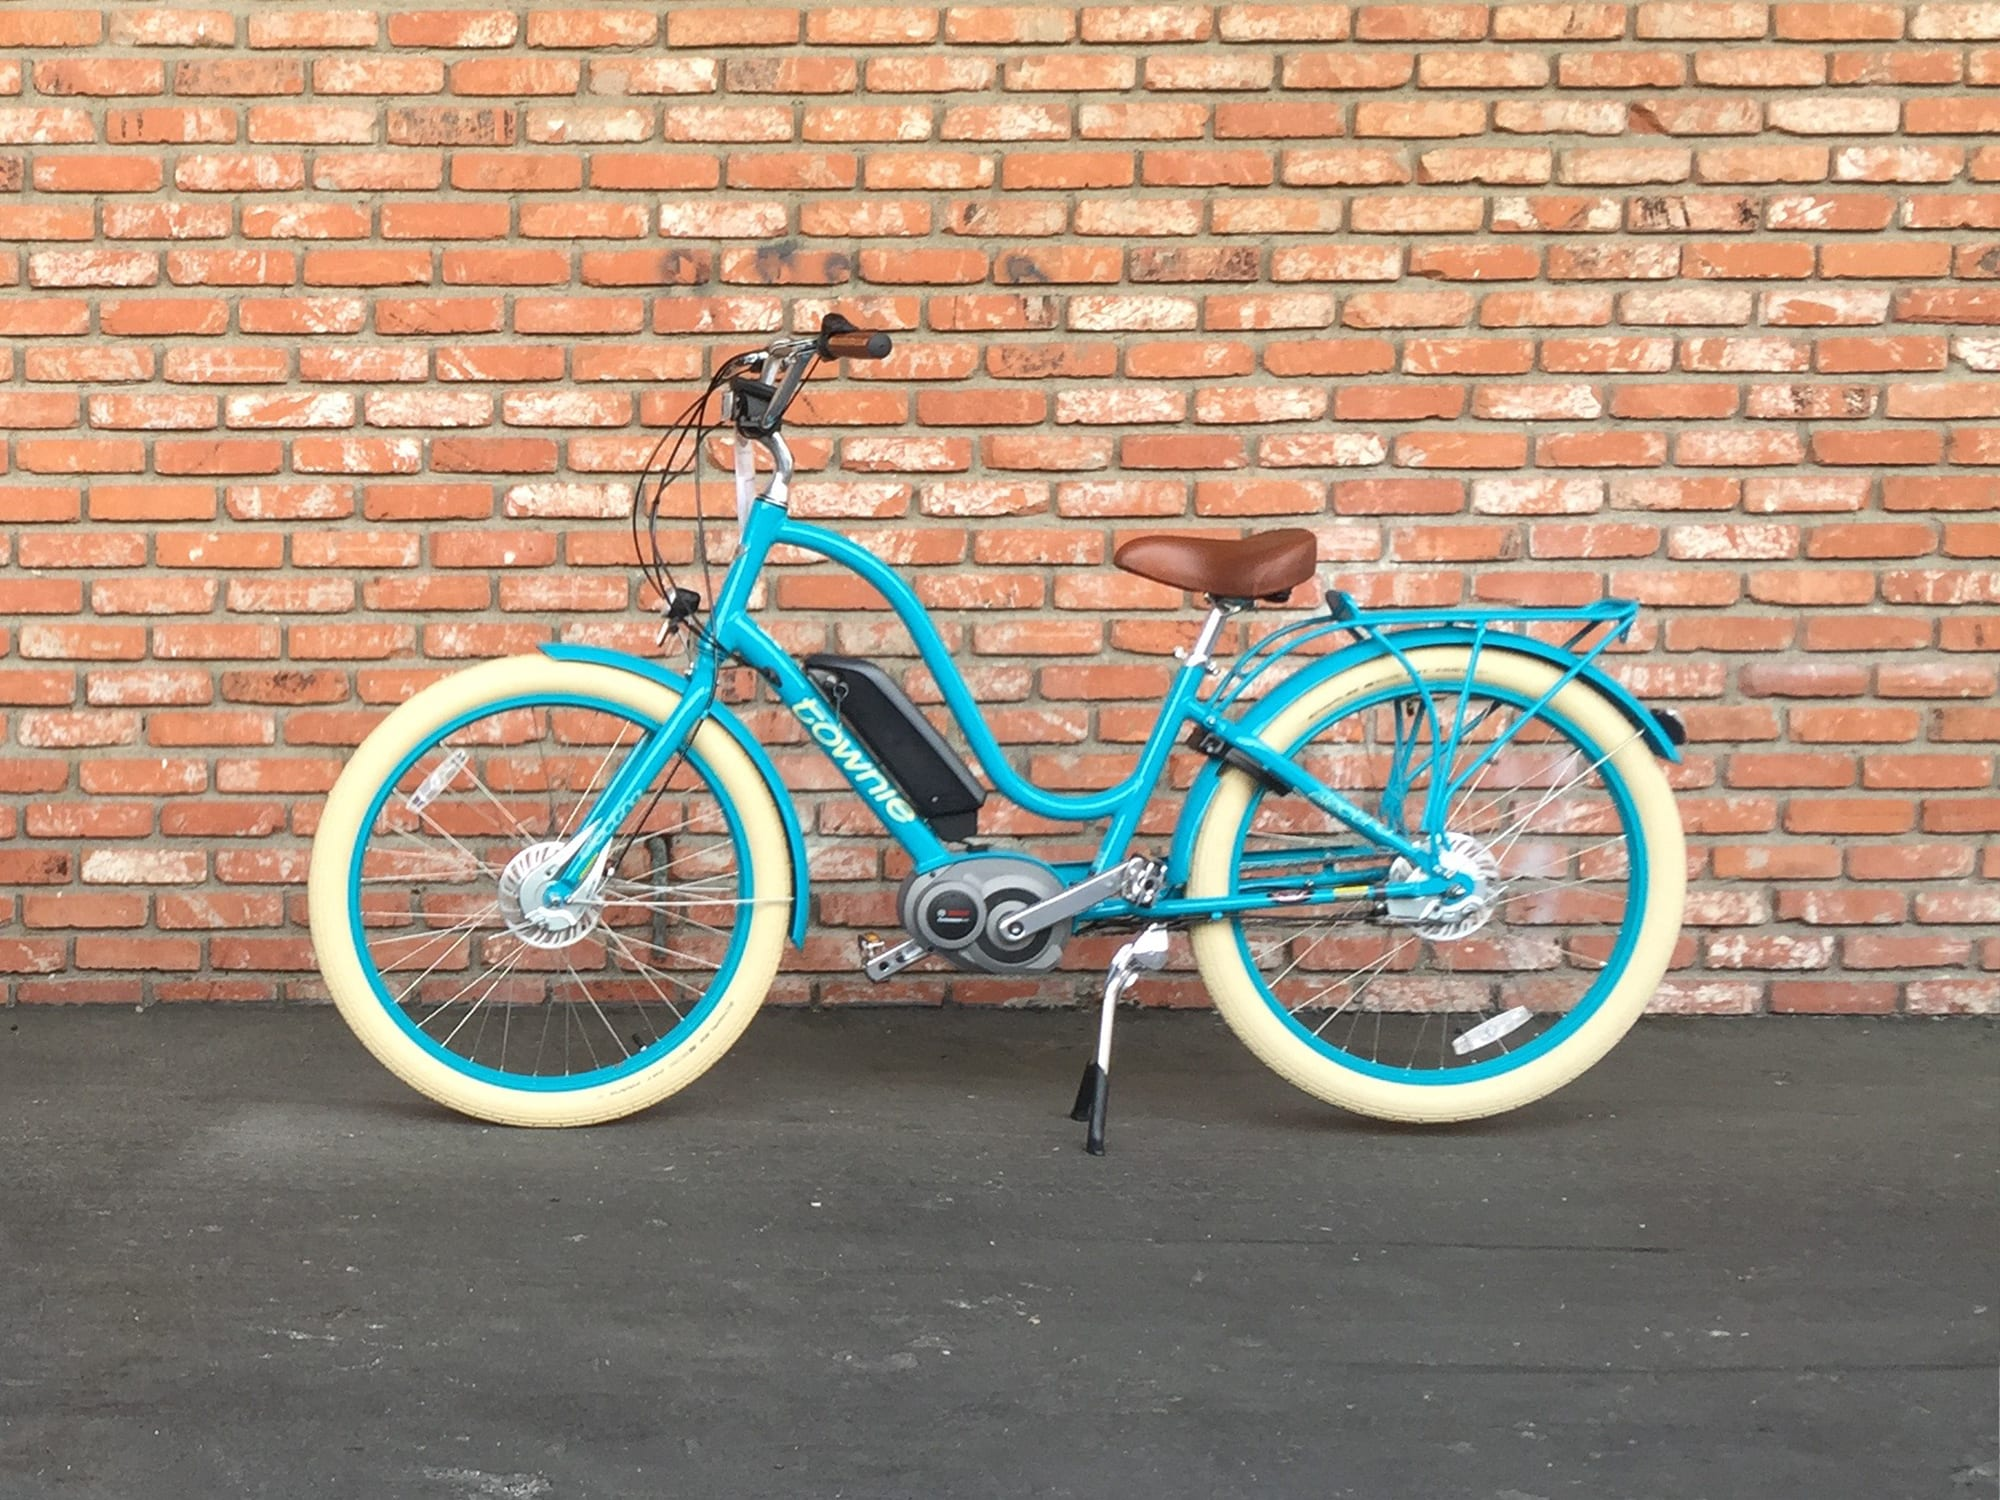 Electra Townie Go Review Prices Specs Videos Photos